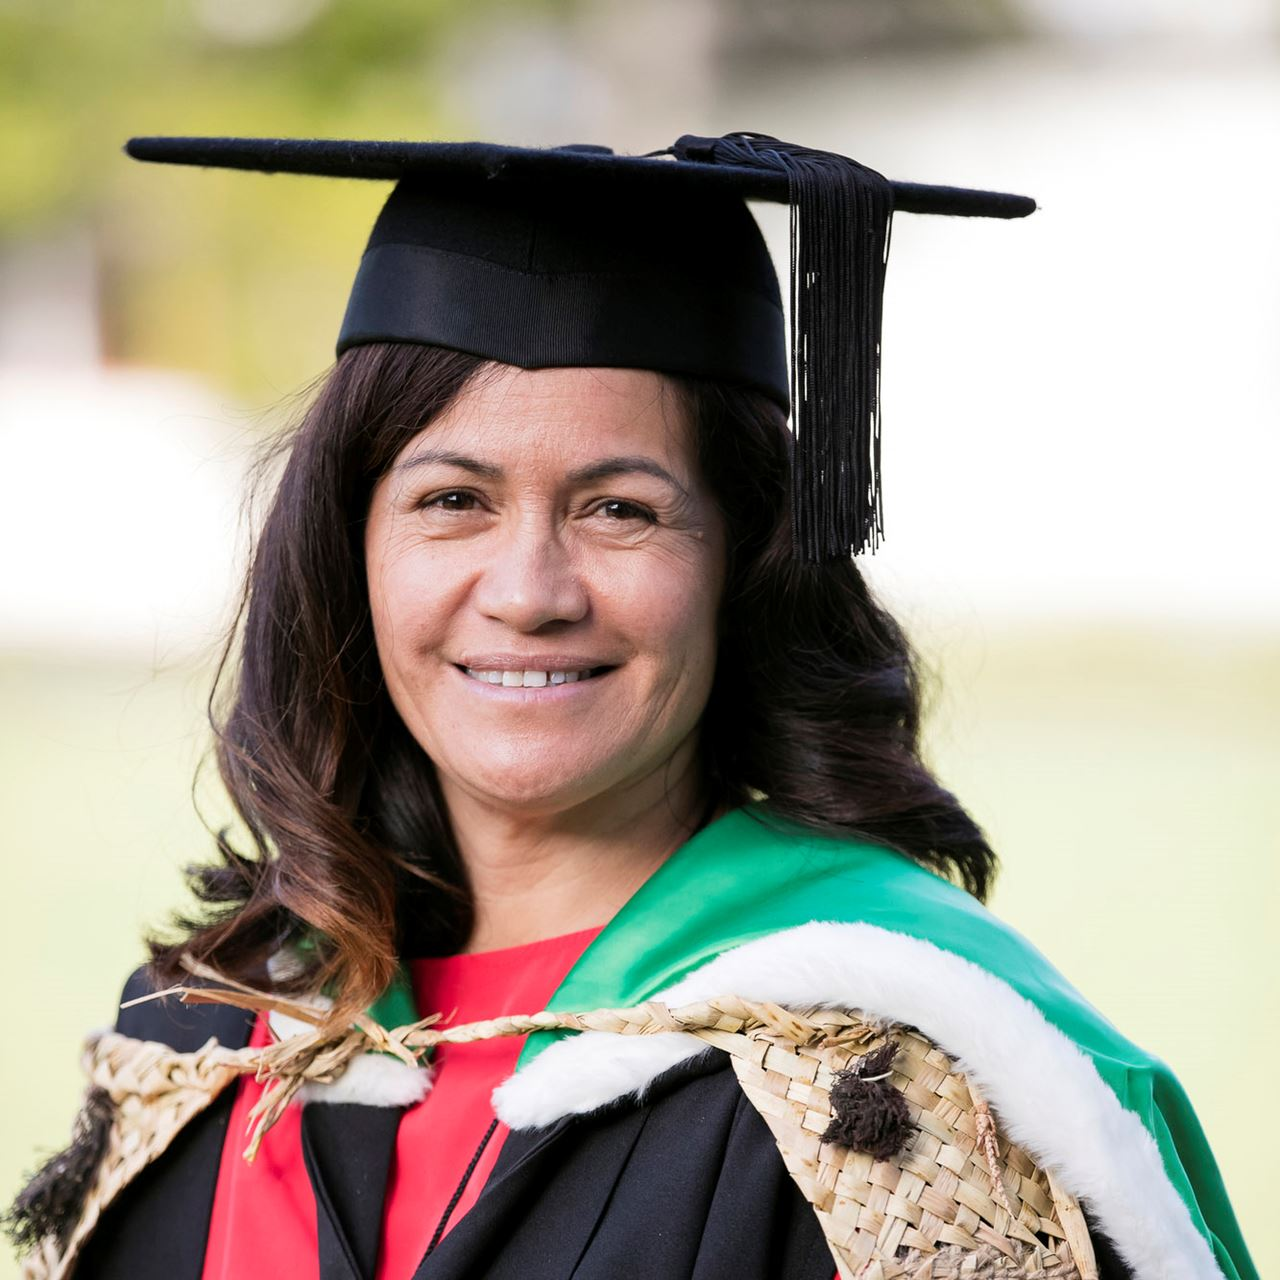 Jasmine Pirini, Bachelor of Education - Teaching graduate